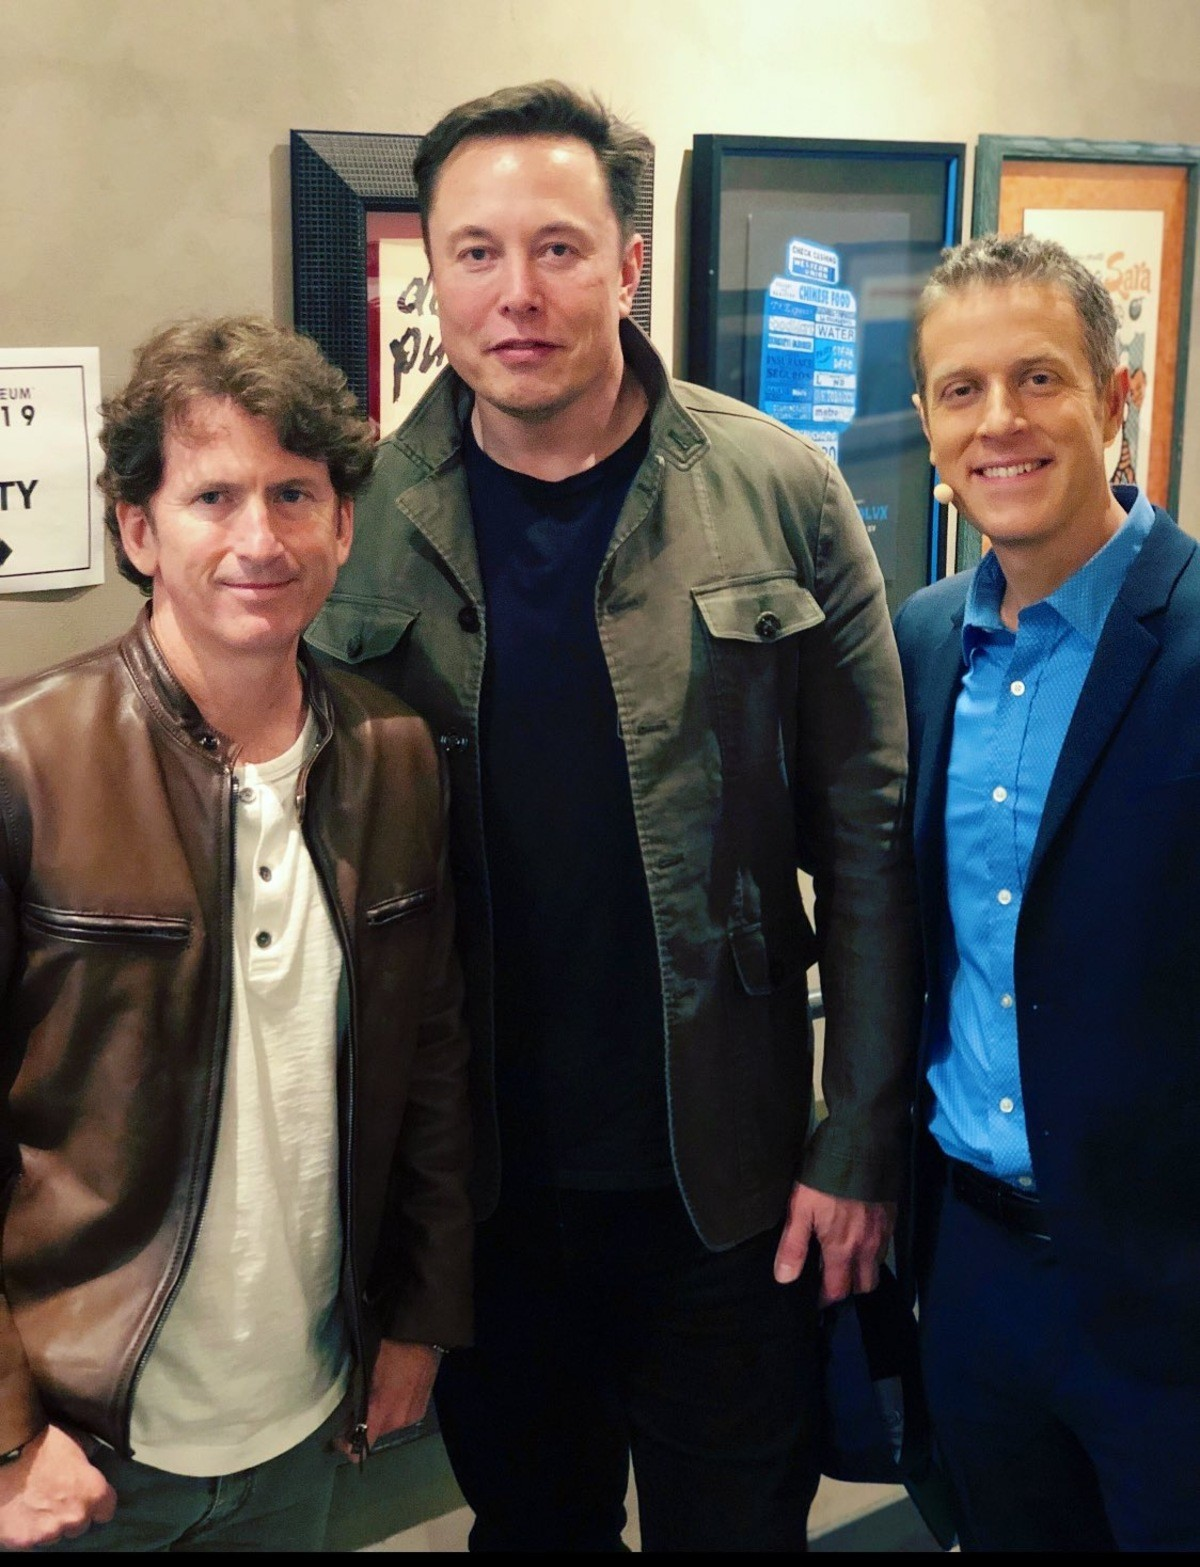 Me and the boys choosing people for our dogeball team. .. Todd and Elon in the same room almost opened a warp rift from the pure amount of chaos energy they emanate.